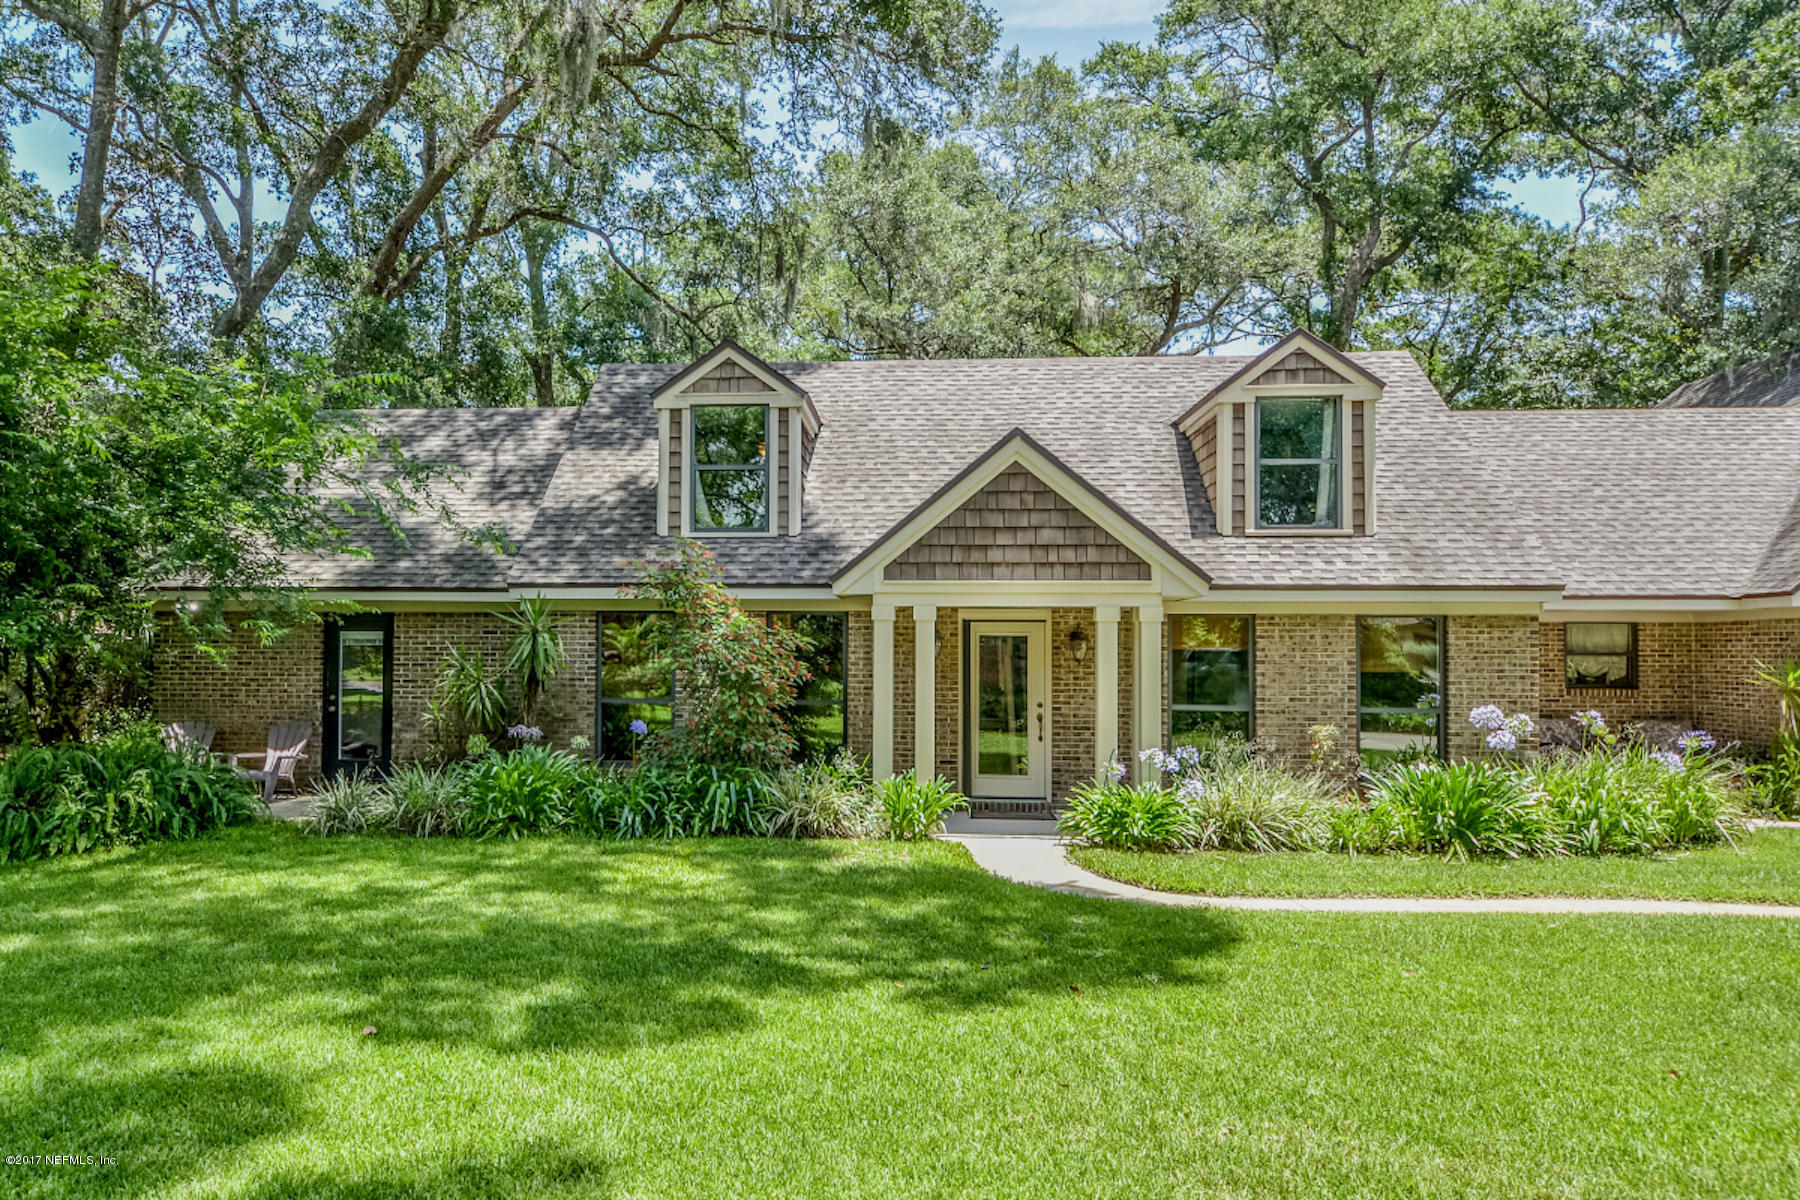 1304 MARIAN, FERNANDINA BEACH, FLORIDA 32034, 5 Bedrooms Bedrooms, ,3 BathroomsBathrooms,Residential - single family,For sale,MARIAN,893509